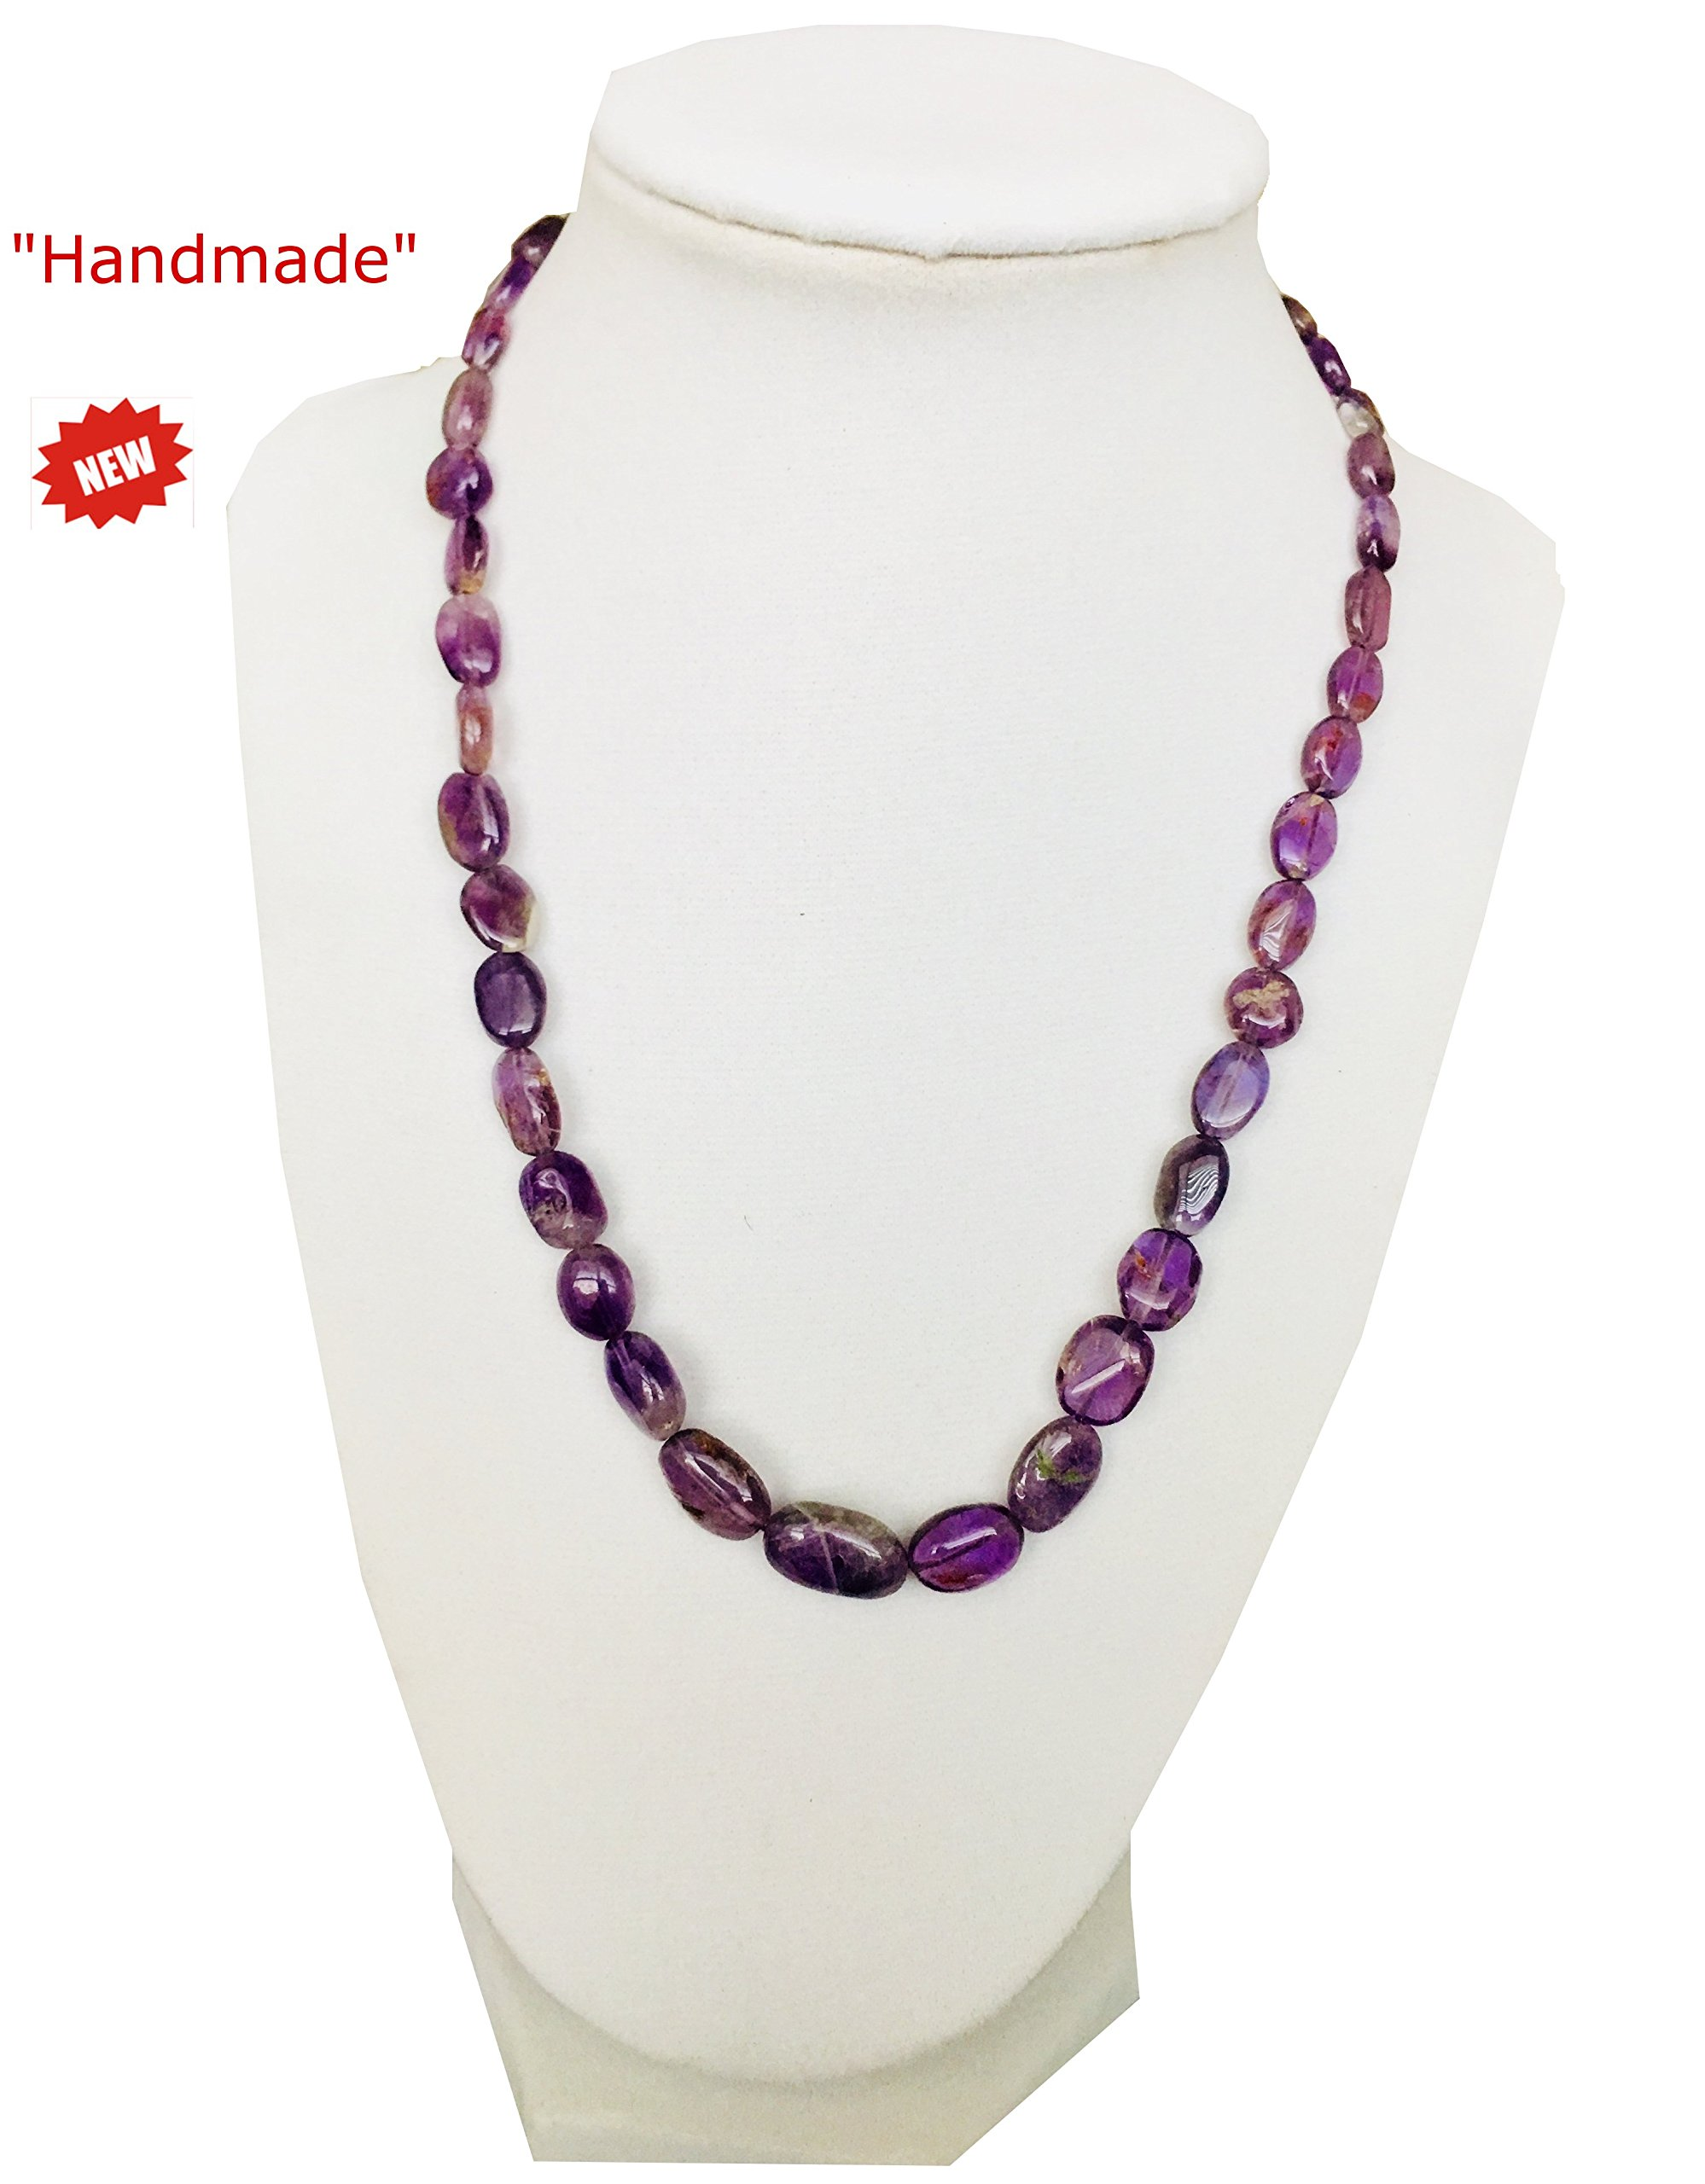 Himalayan Handmade Necklace Semi Quality Purple Color Transparent Gemstone Beads With Gift Box